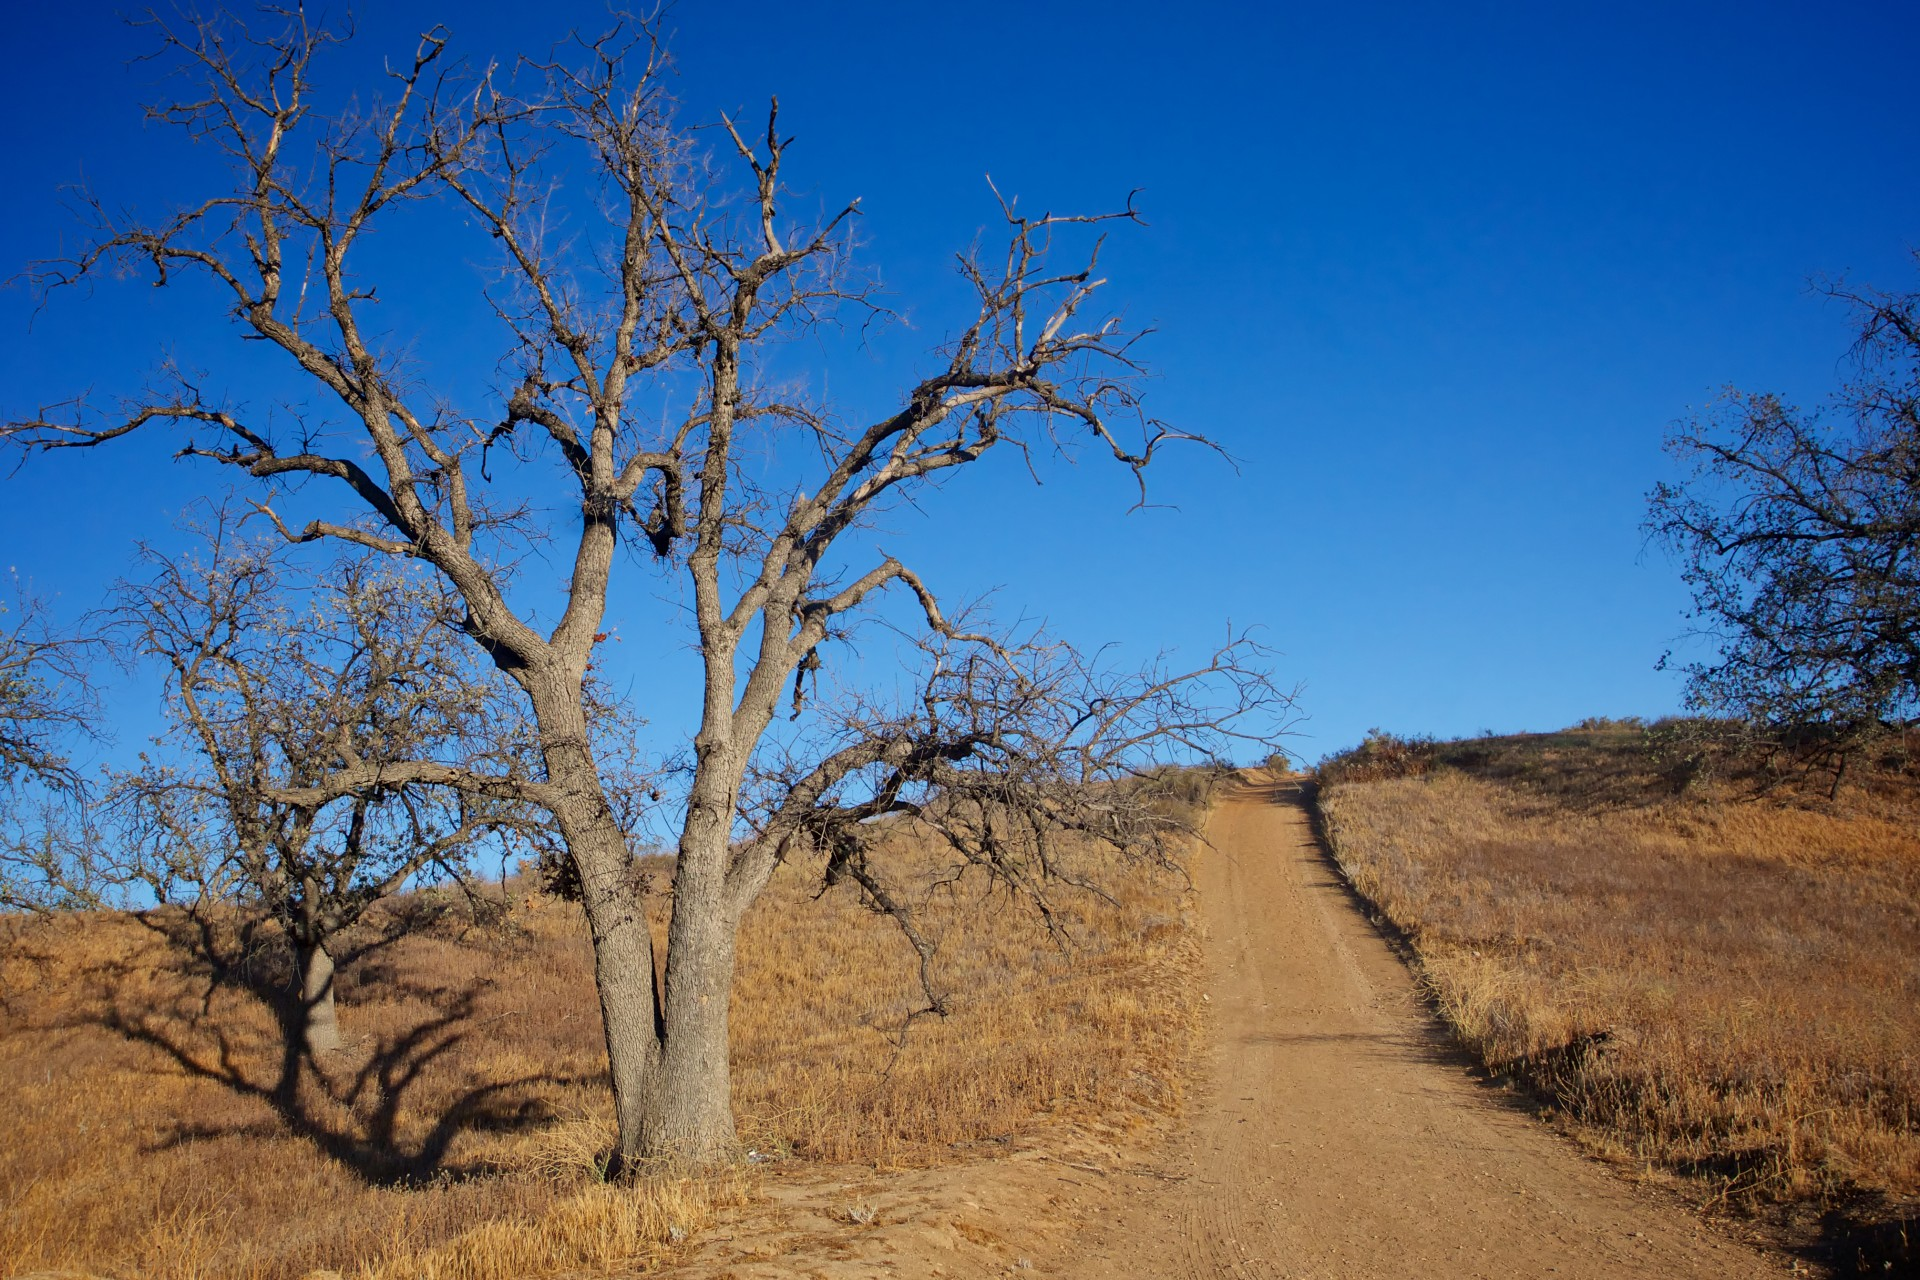 Path Through Wilderness Free Stock Photo - Public Domain Pictures